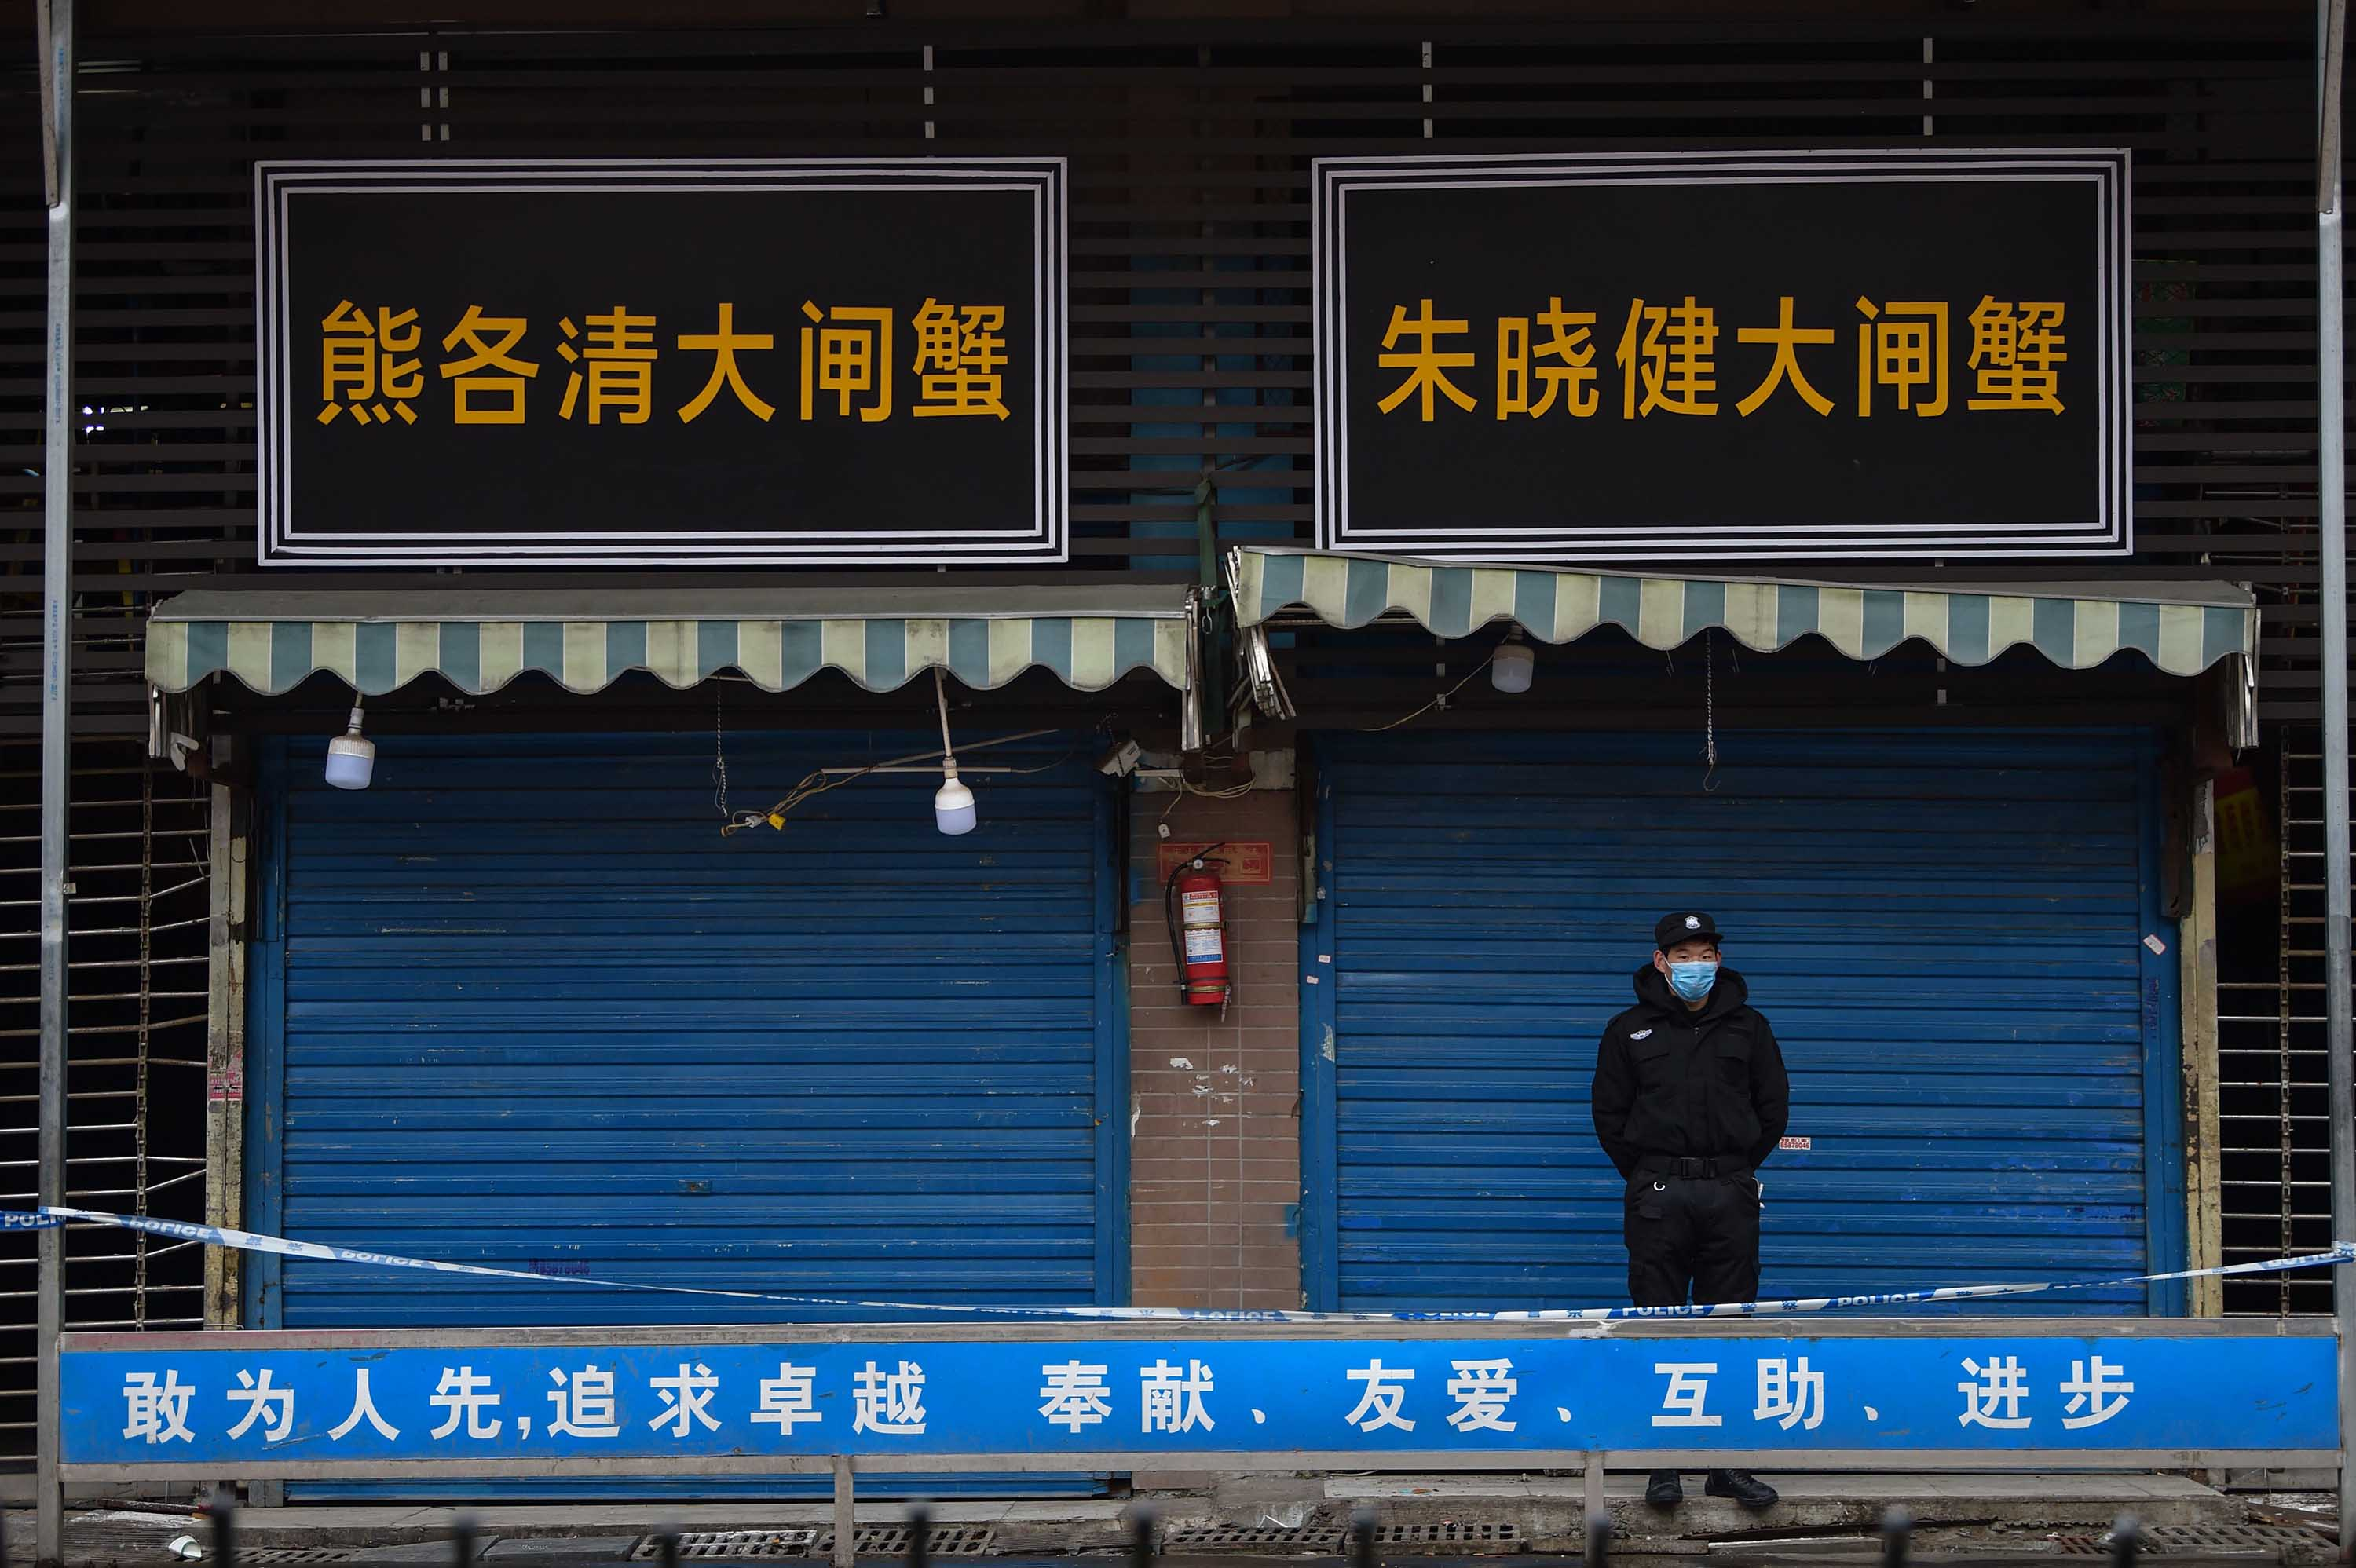 A security guard stands outside the Huanan Seafood Wholesale Market in Wuhan, China on January 24, 2020, where the coronavirus was detected in the early days of the outbreak.